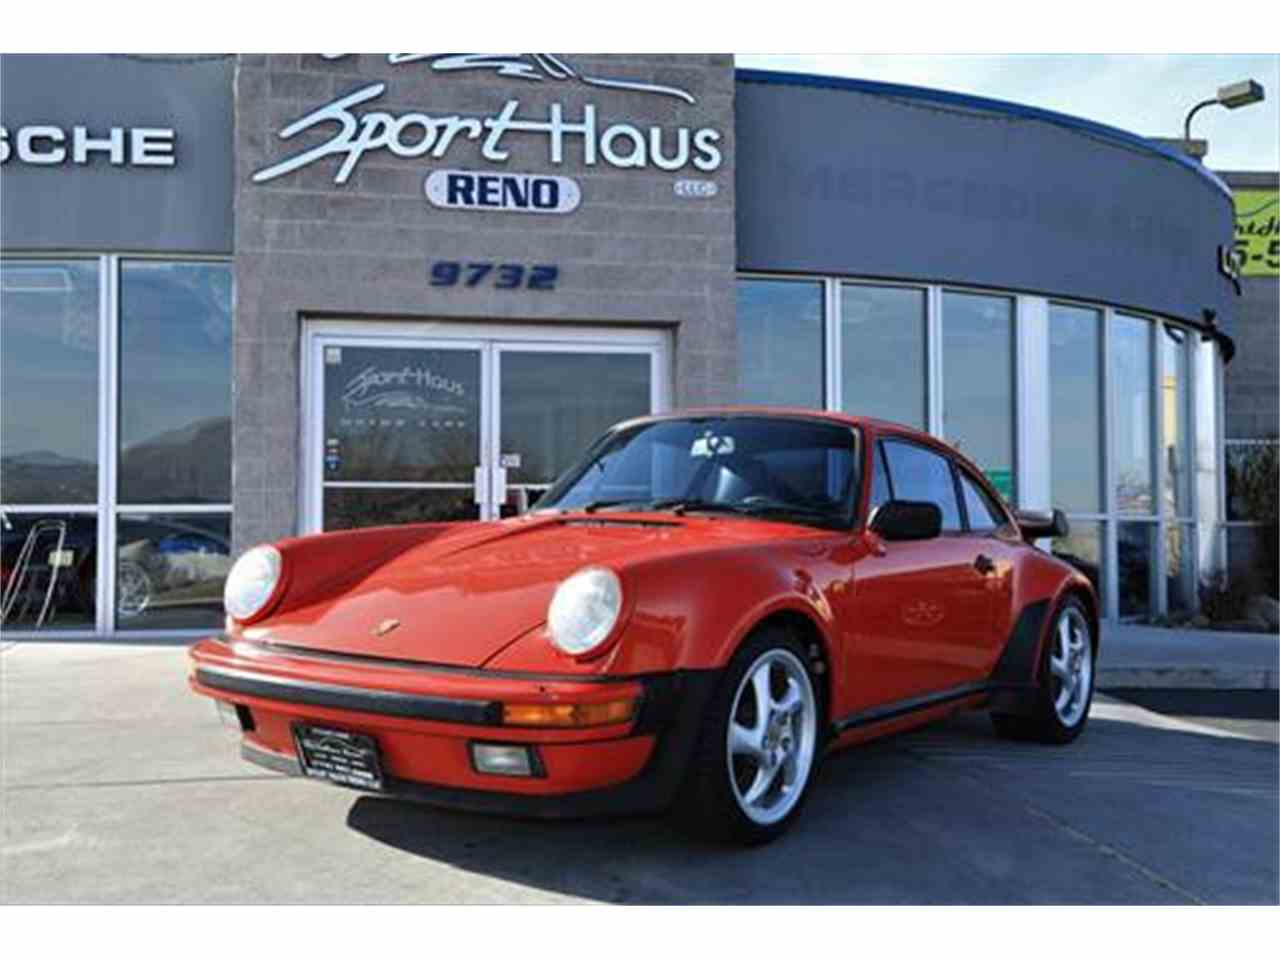 100 ideas 1985 porsche 911 on grifonisw 1985 porsche 911 for sale on classiccarscom 5 available vanachro Image collections